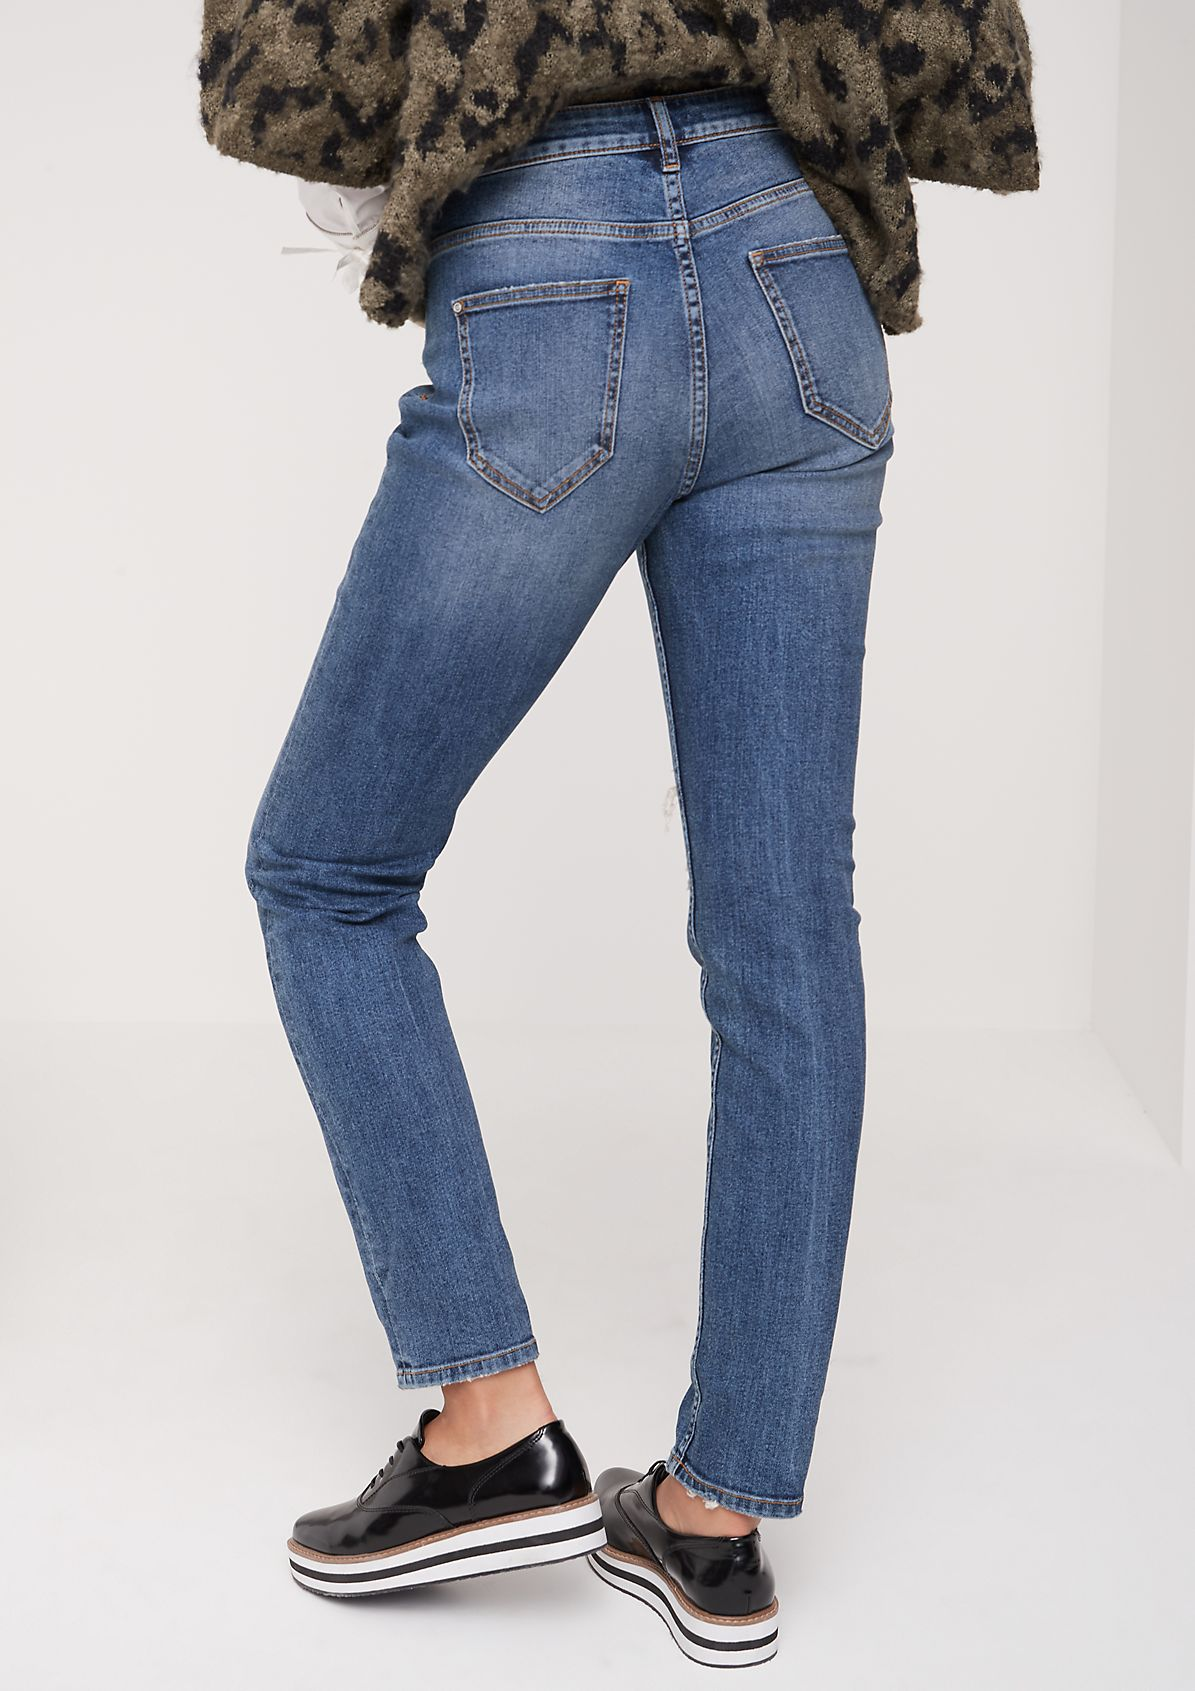 vintage-style jeans from comma